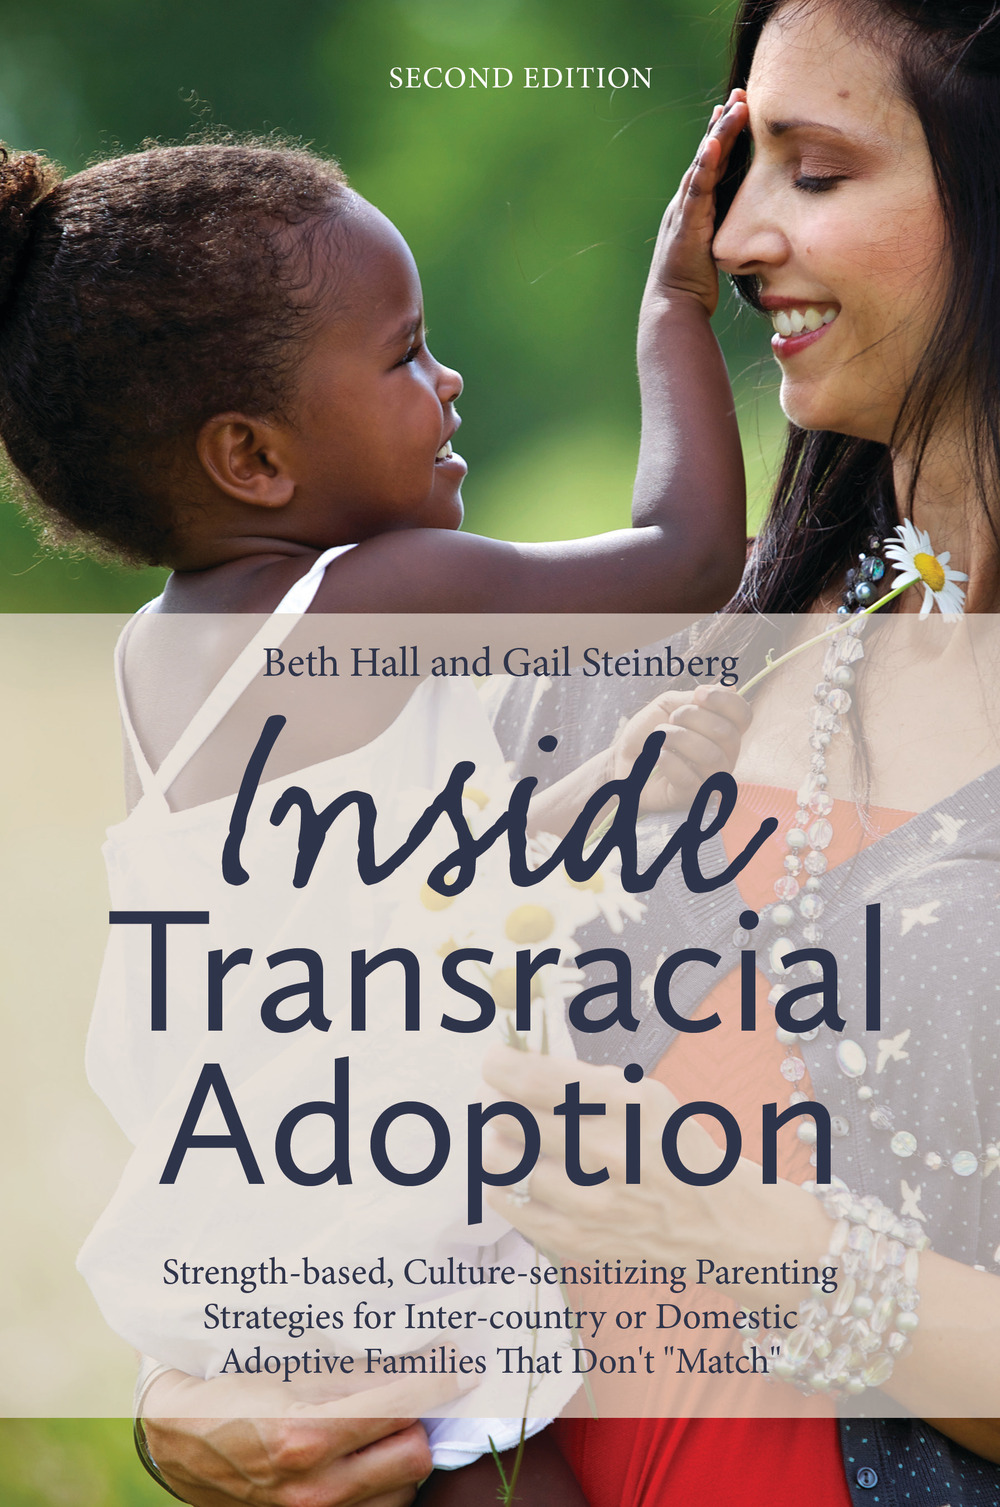 "Inside Transracial Adoption Strength-based,  Culture-sensitizing Parenting Strategies for Inter-country or Domestic Adoptive Families That Don't ""Match"